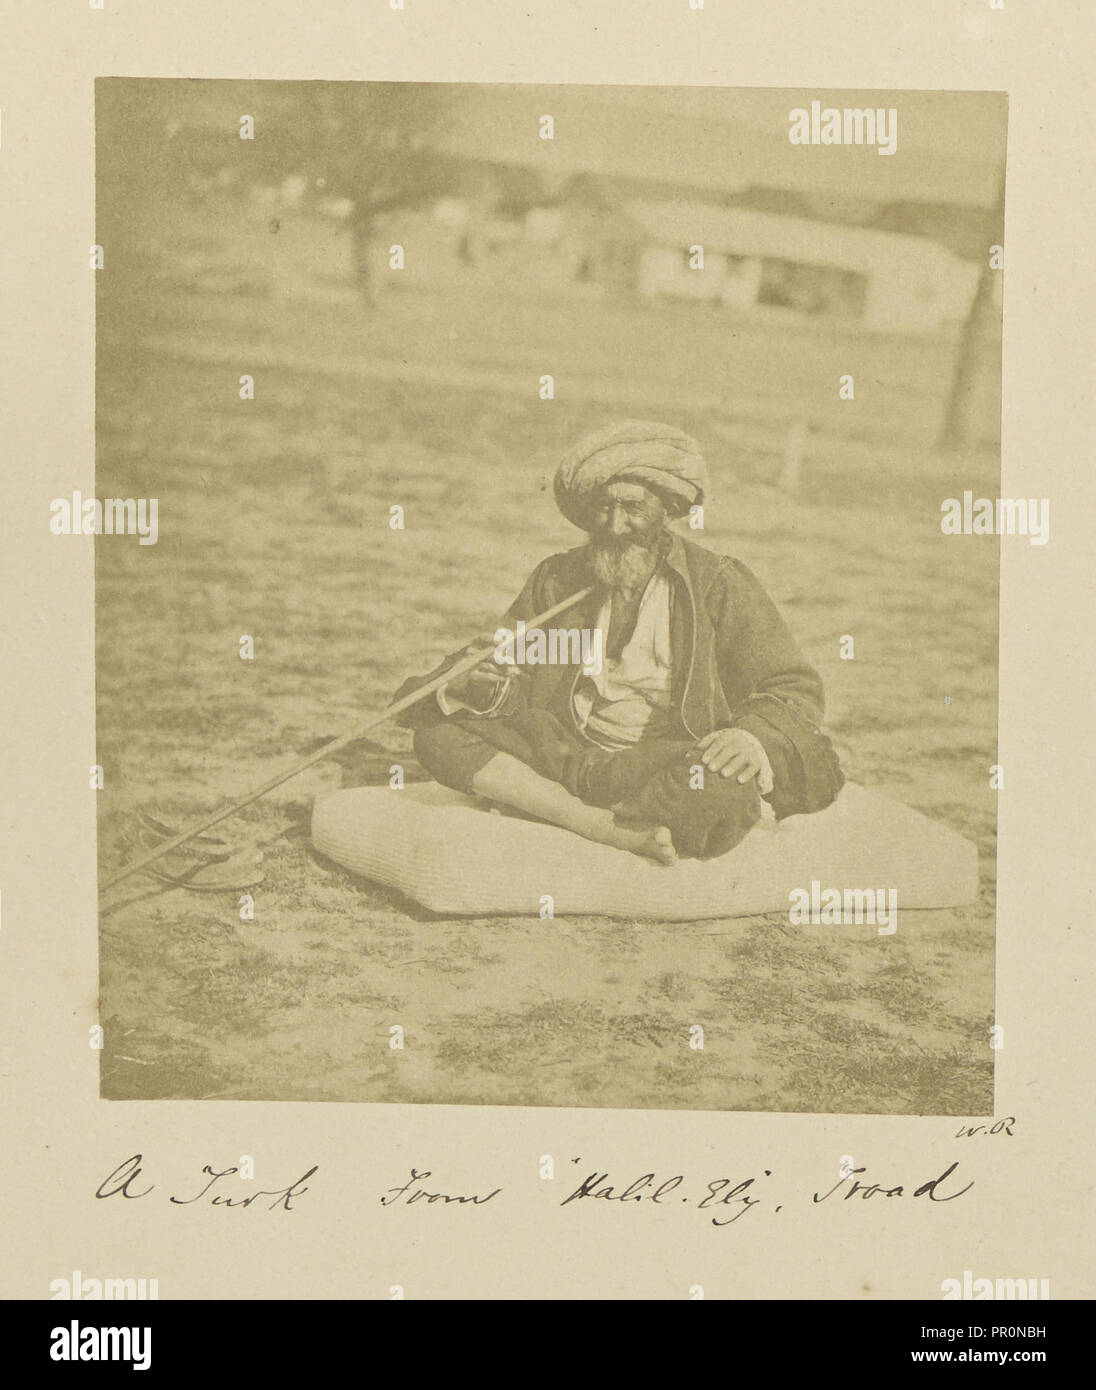 A Turk From Halil Ely, Troad; Dr. William Robertson, Scottish, 1818 - 1882, Çanakkale, Turkey; 1855 - 1856; Albumen silver - Stock Image